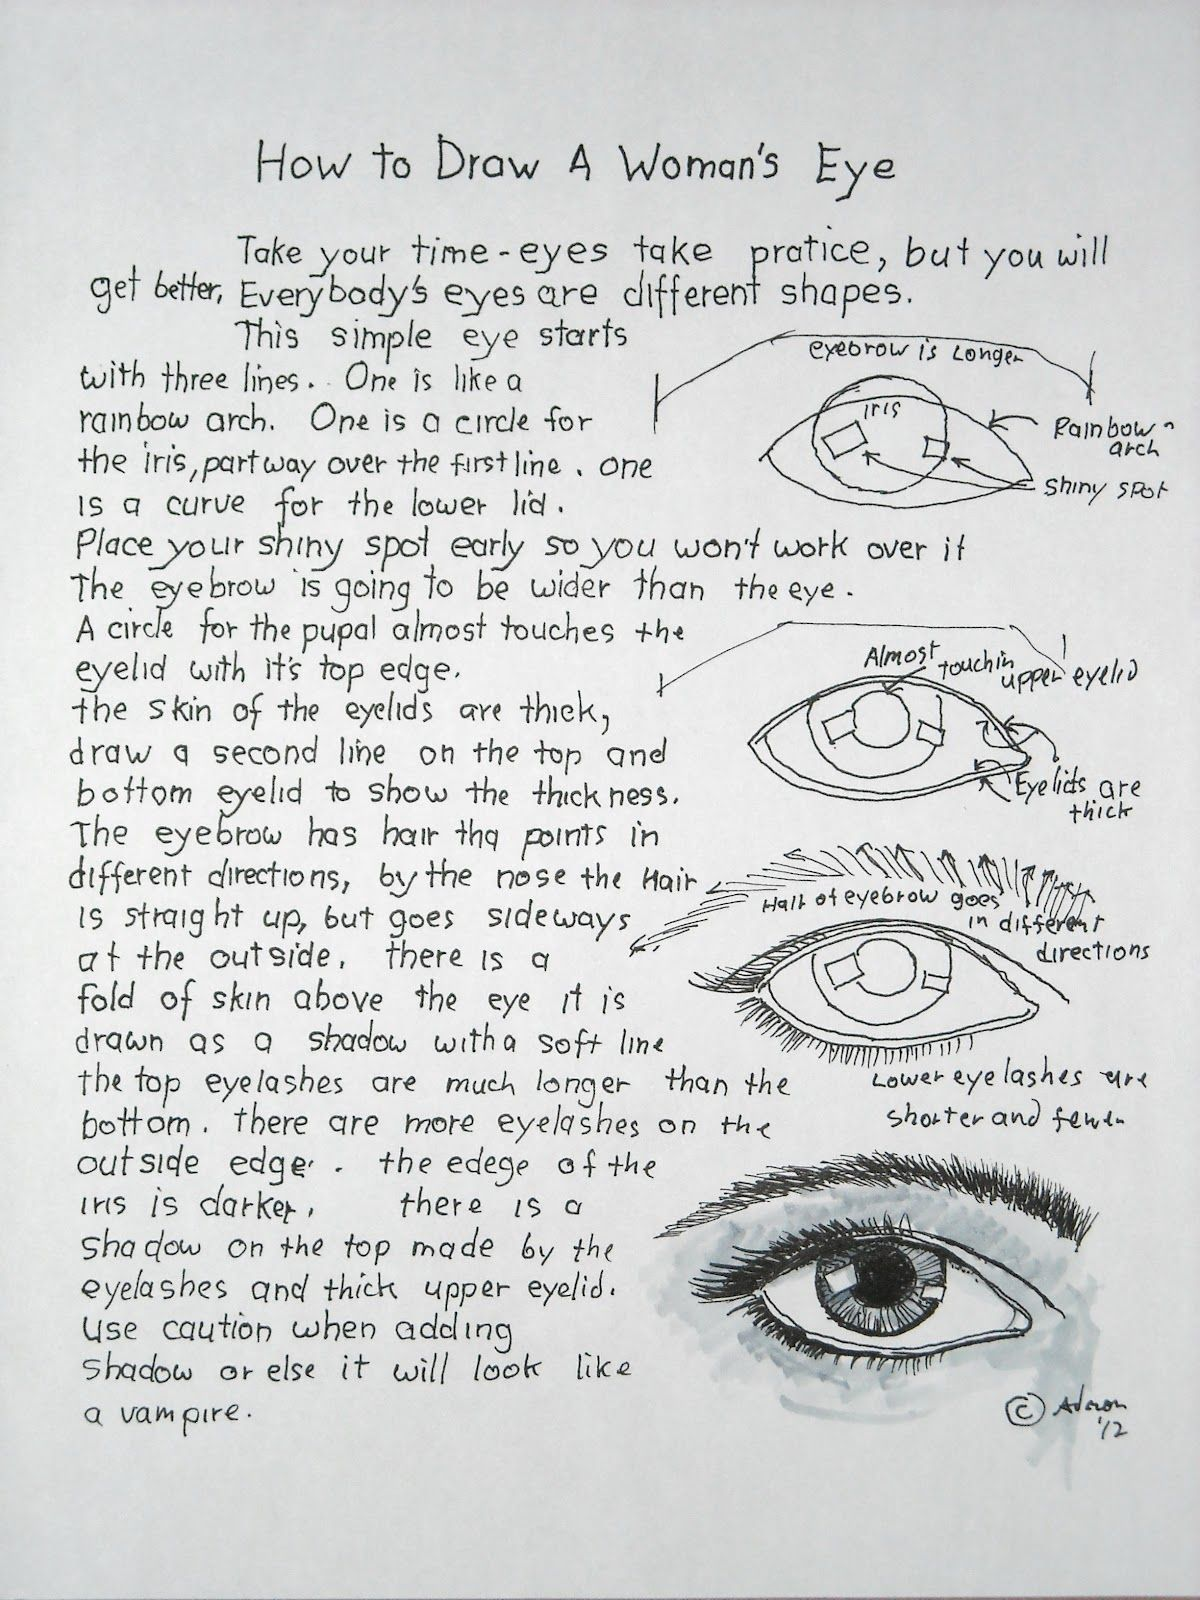 How To Draw A Woman S Eye Lesson And Worksheet